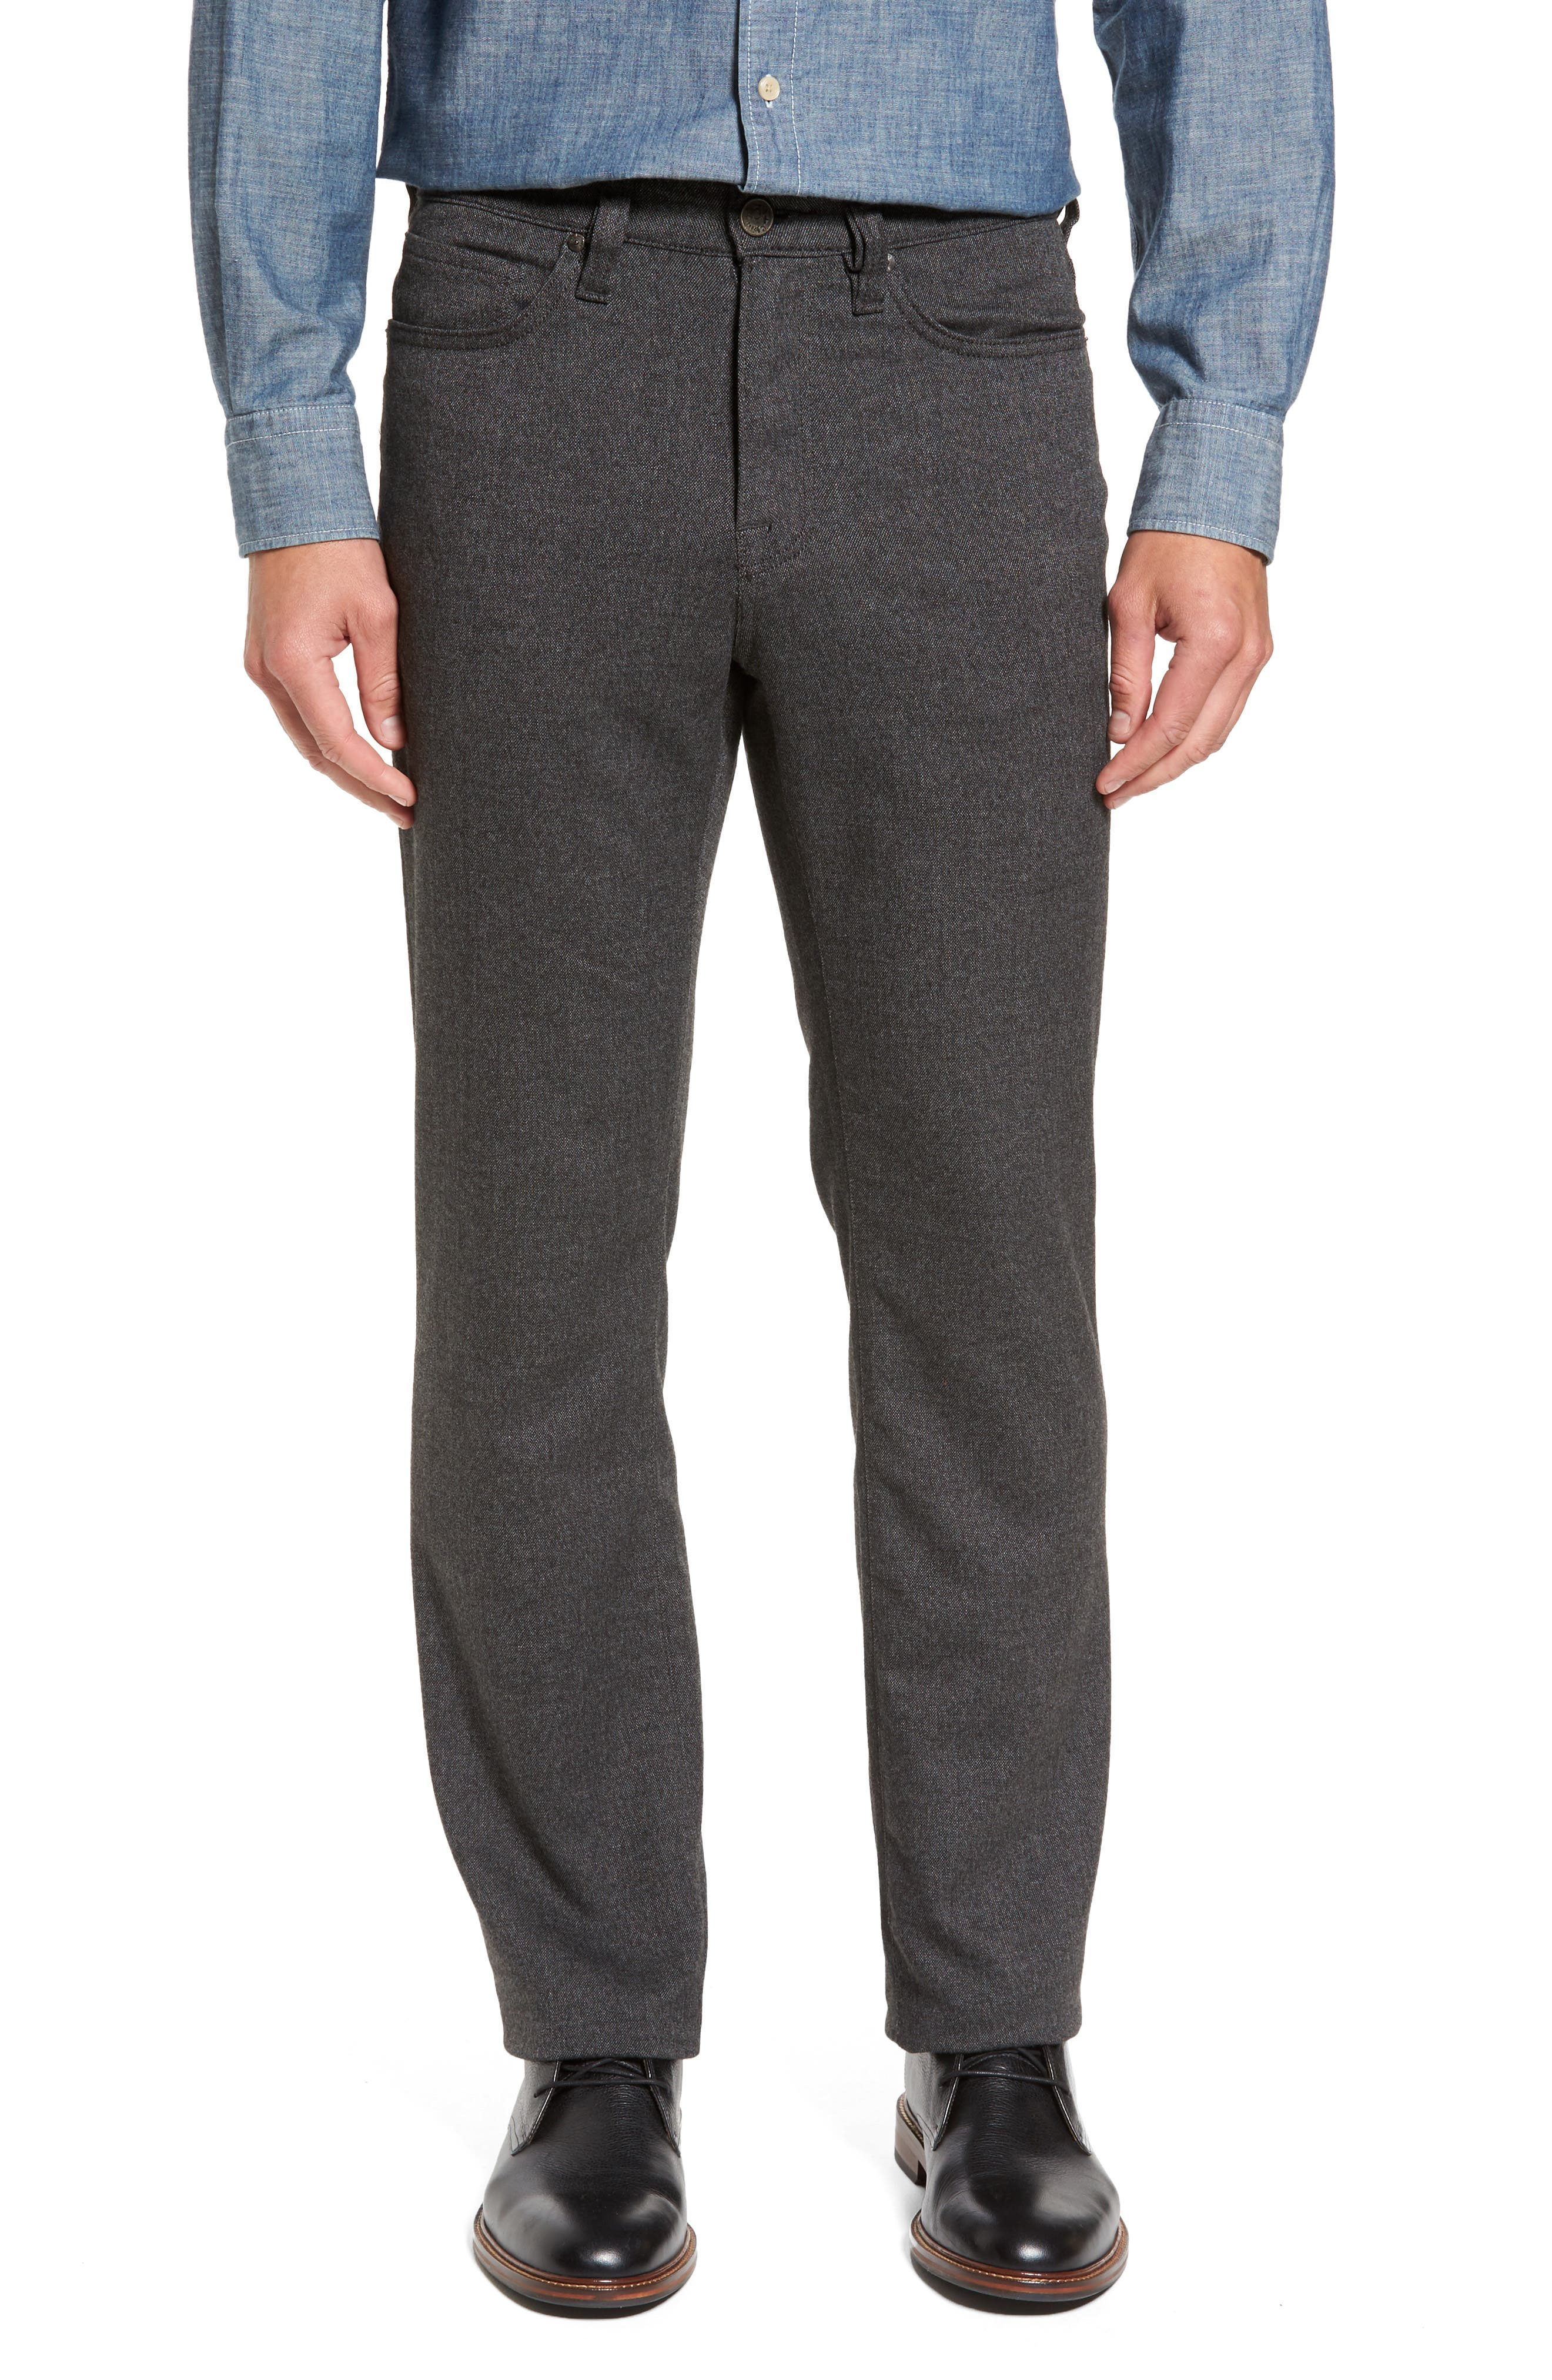 34 Heritage Charisma Relaxed Fit Jeans (Grey Feather Tweed)